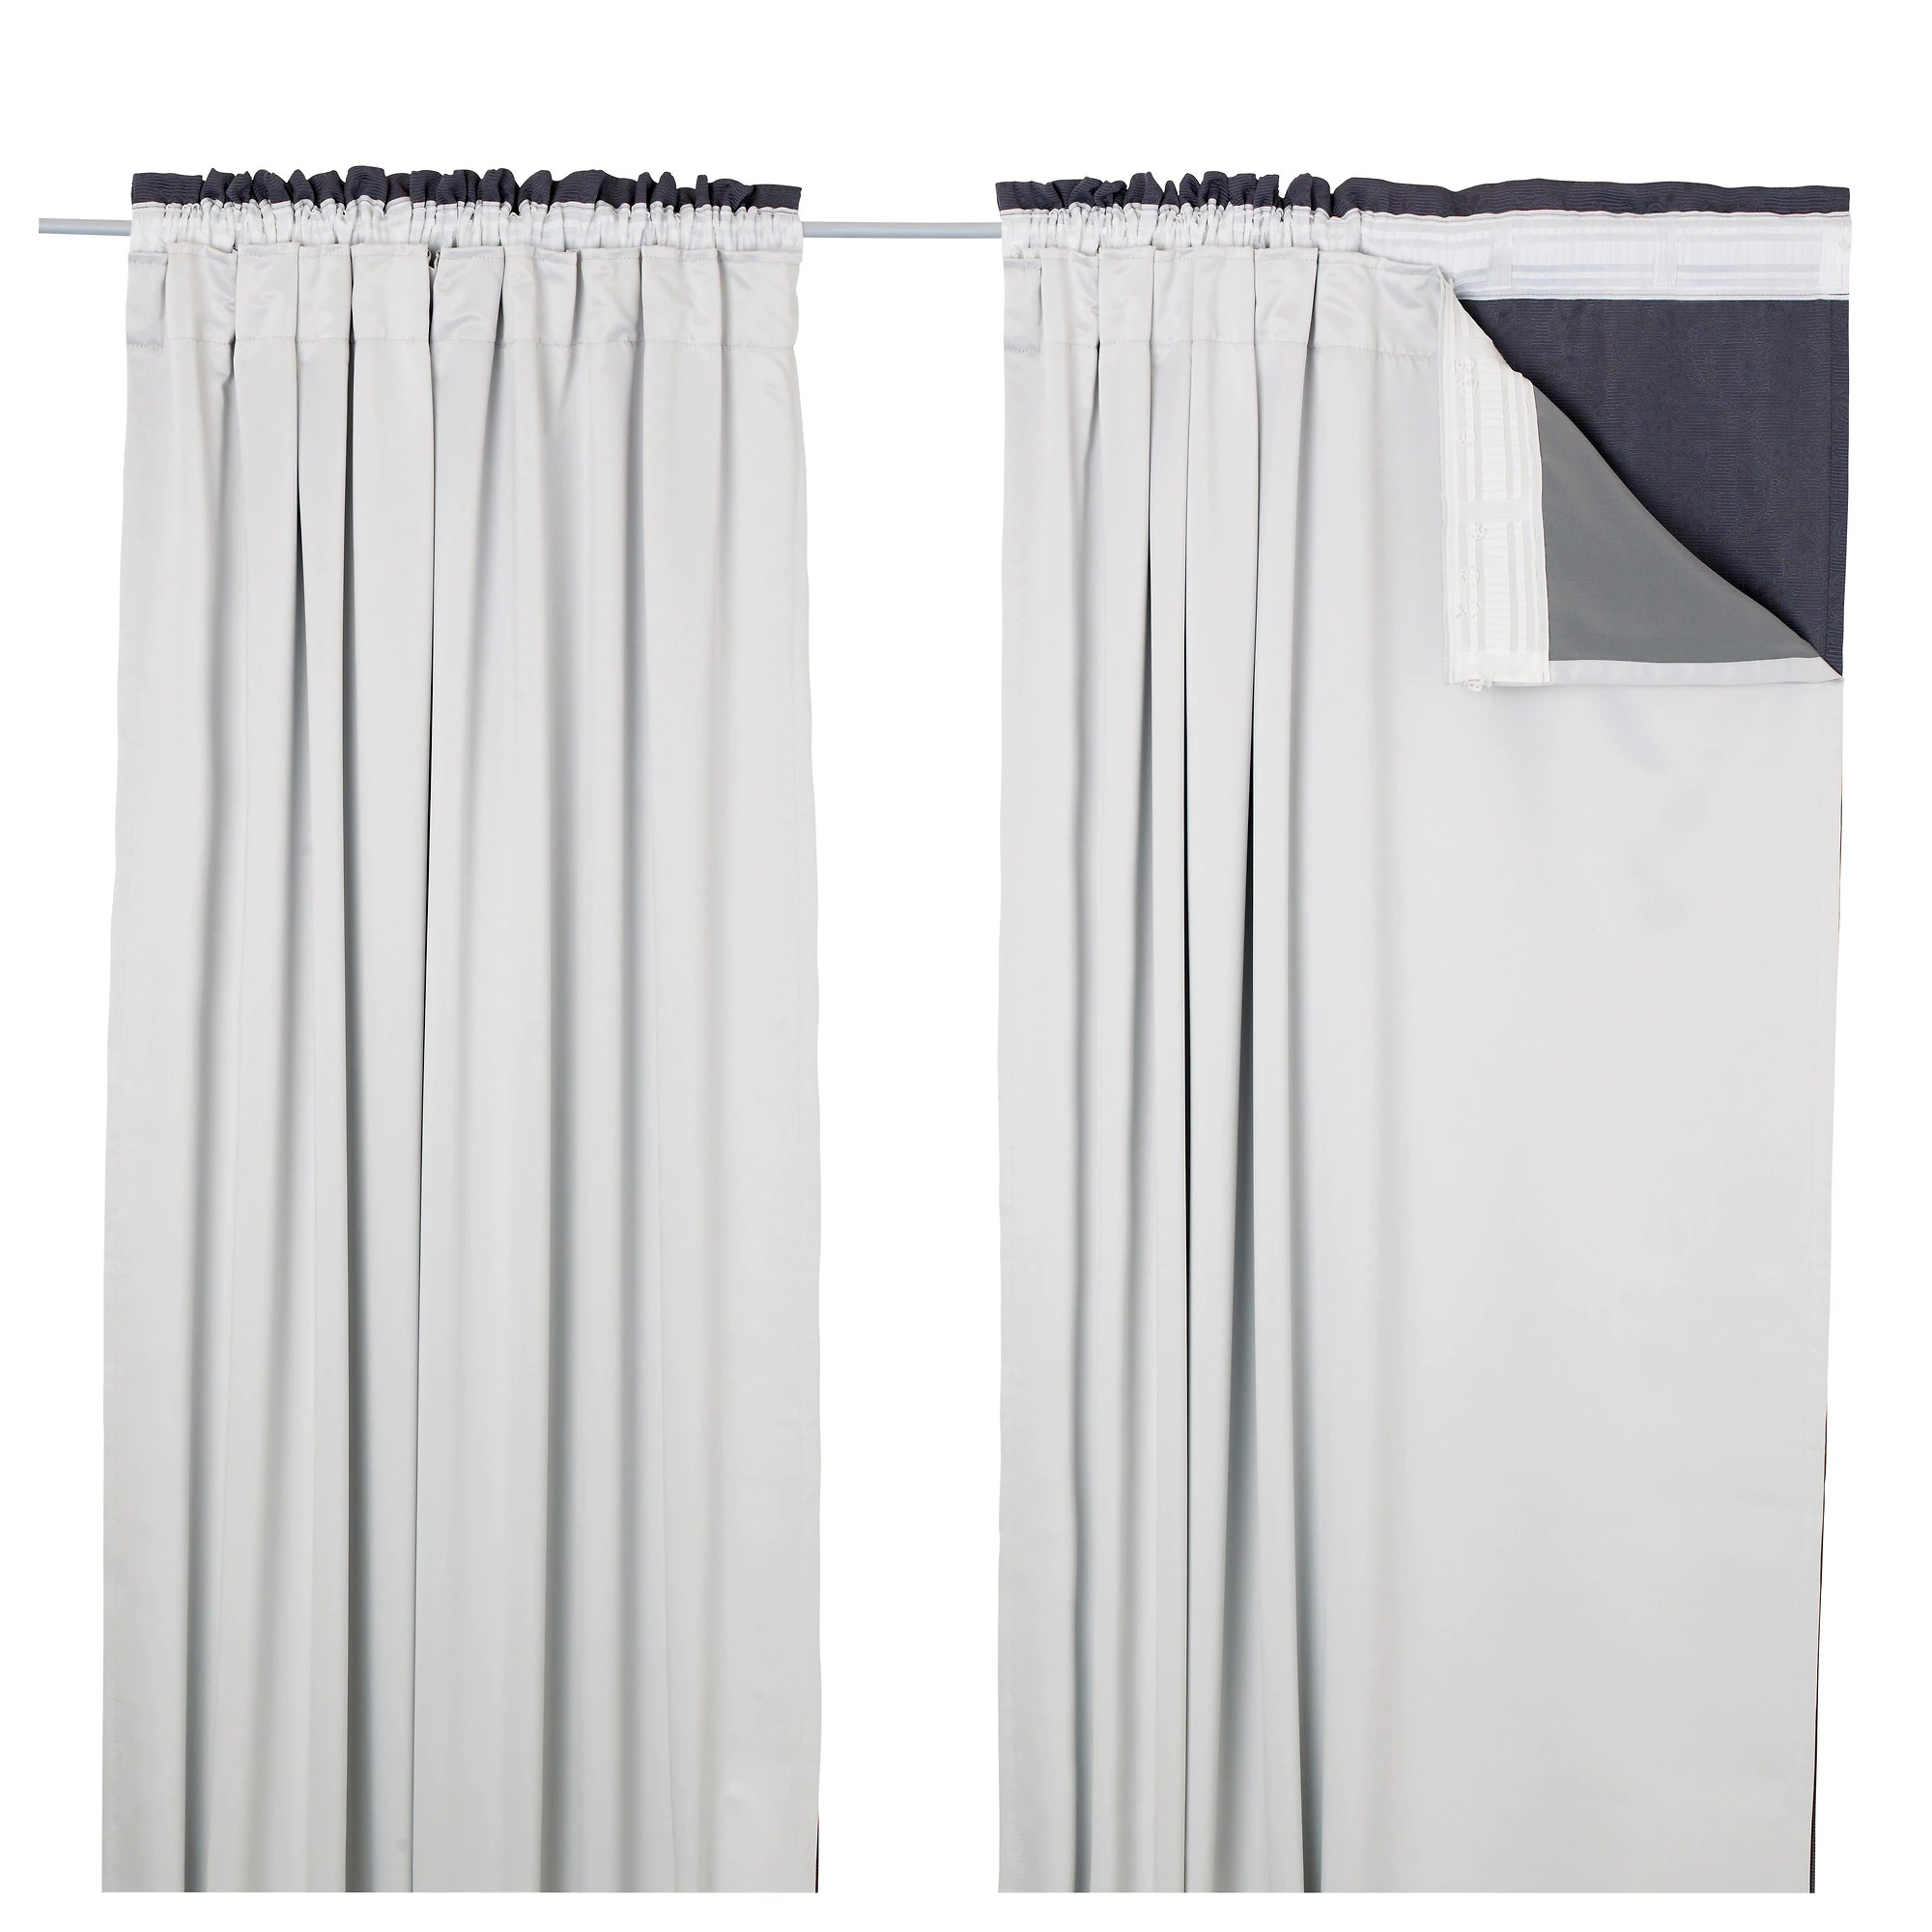 "GLANSNÄVA Curtain Liners 1 Pair 56x94 "" IKEA"